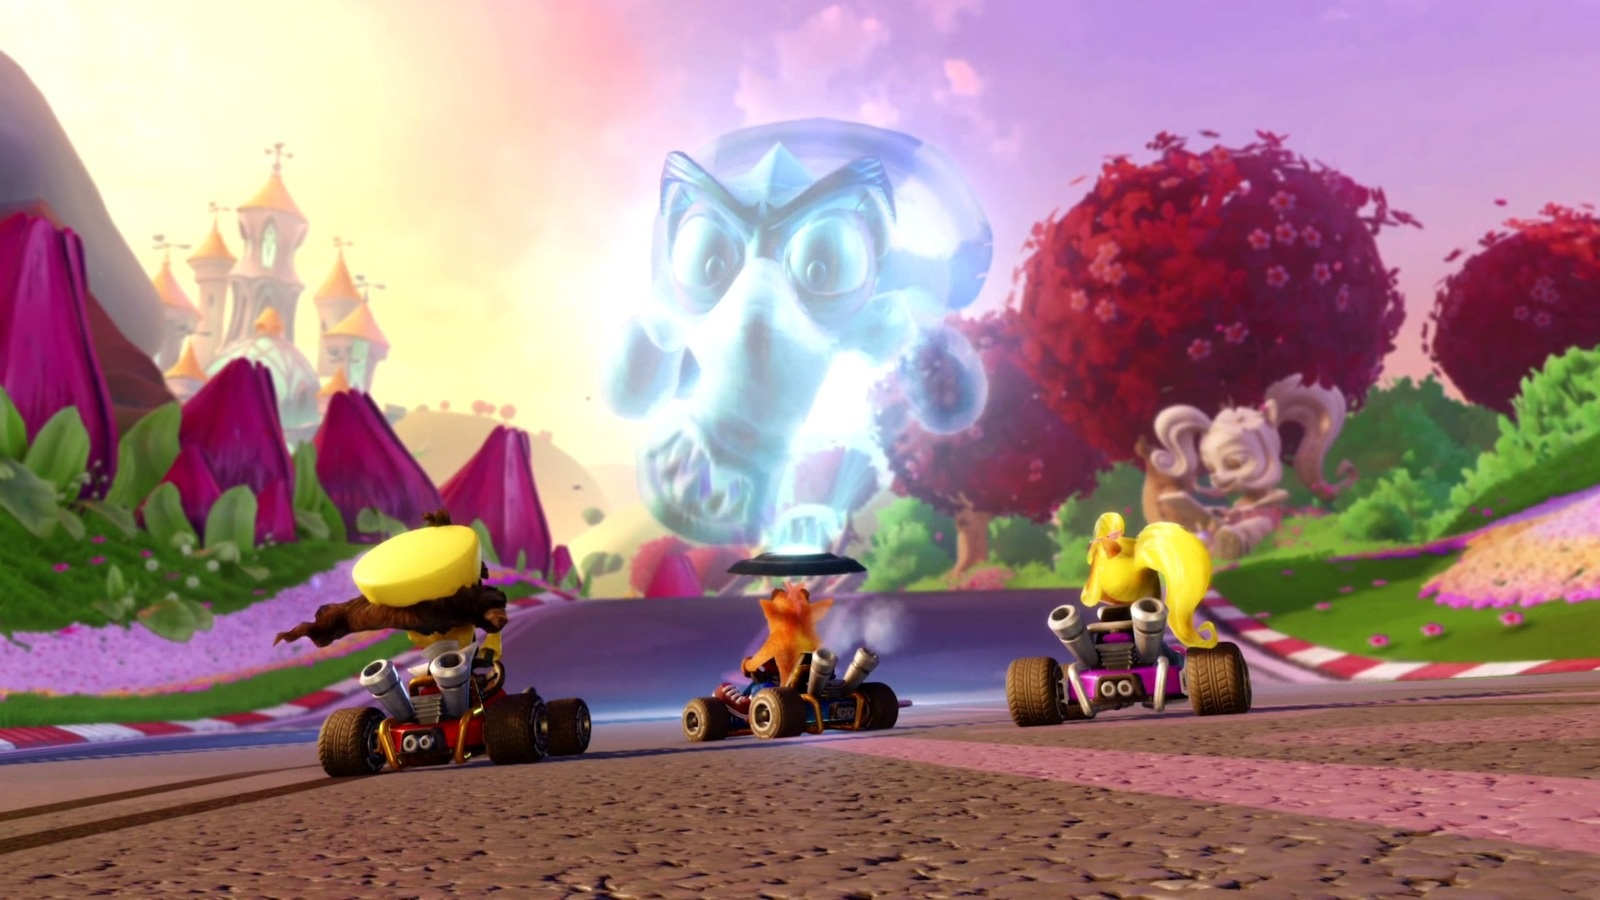 Crash Team Racing Nitro-Fueled; screenshot: Oxide